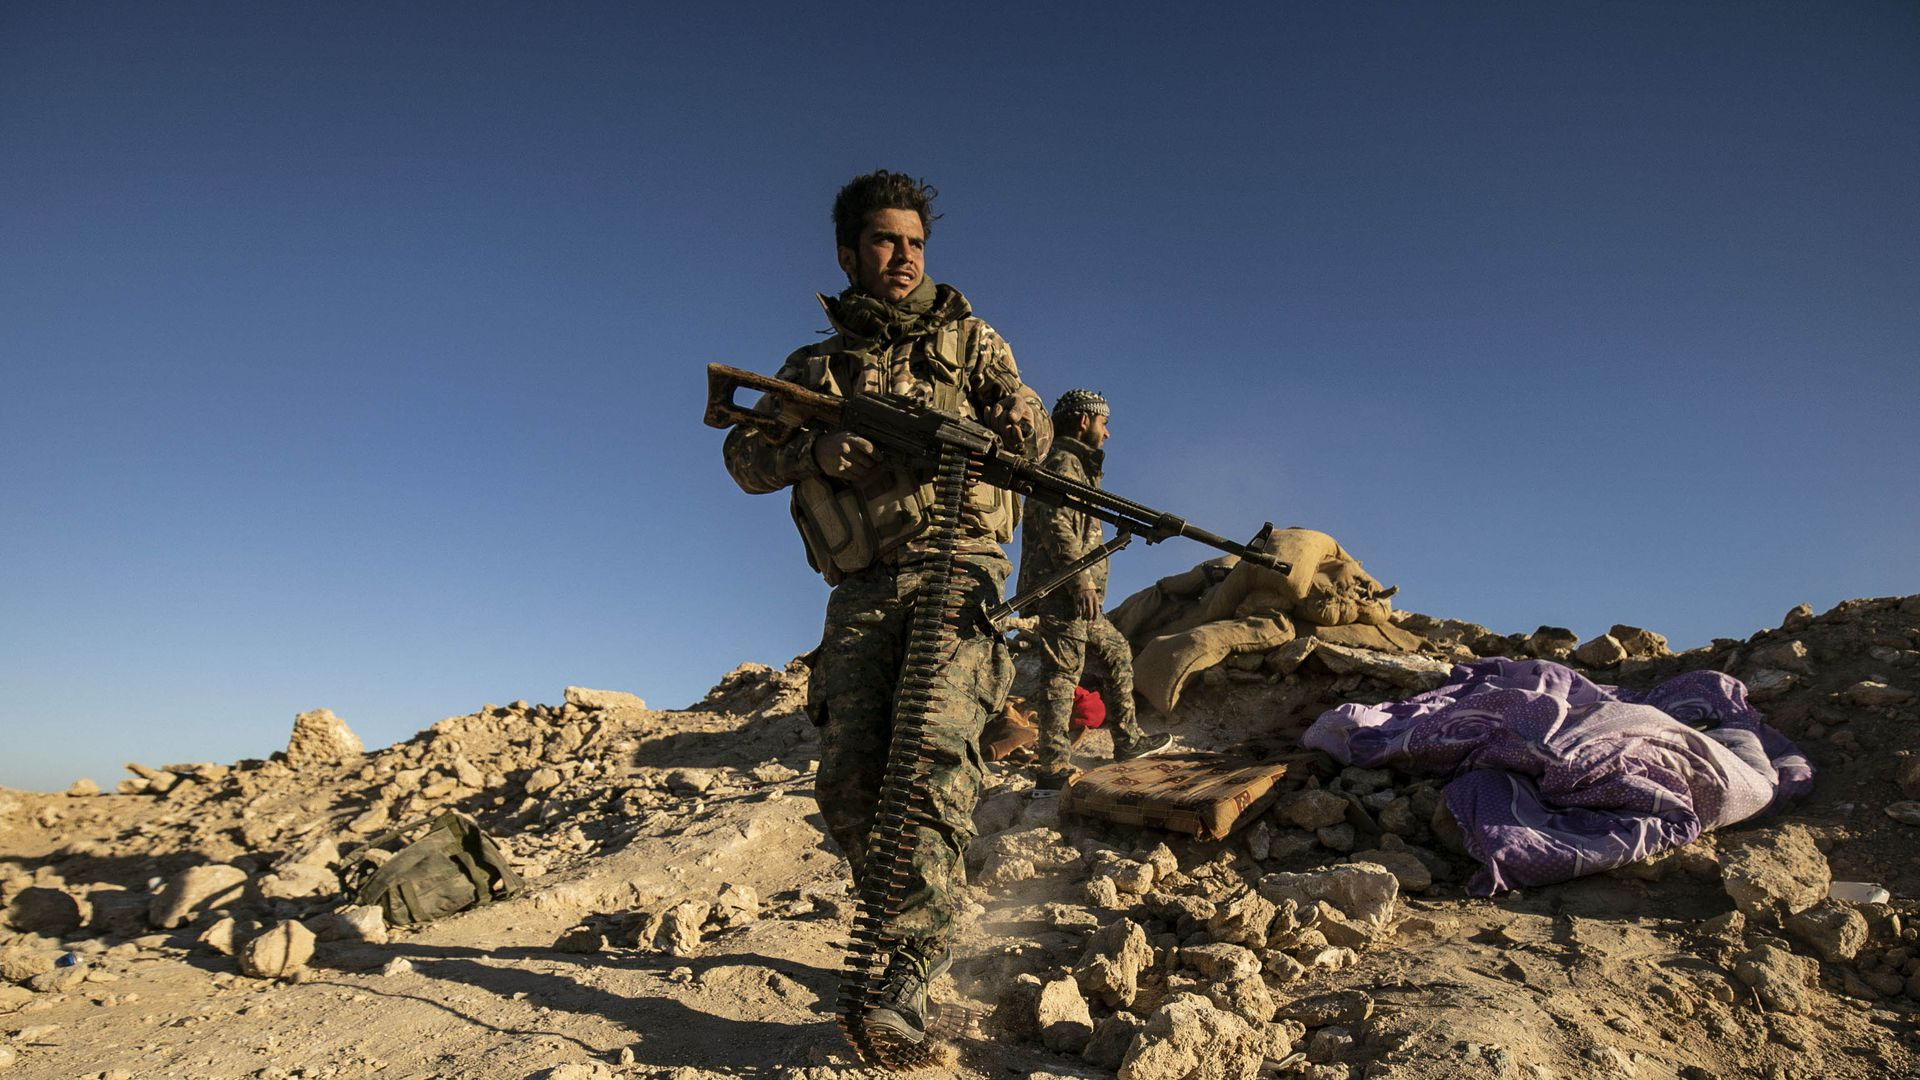 A Syrian fighter stands alone on a dirt hill, carrying an assault weapon.